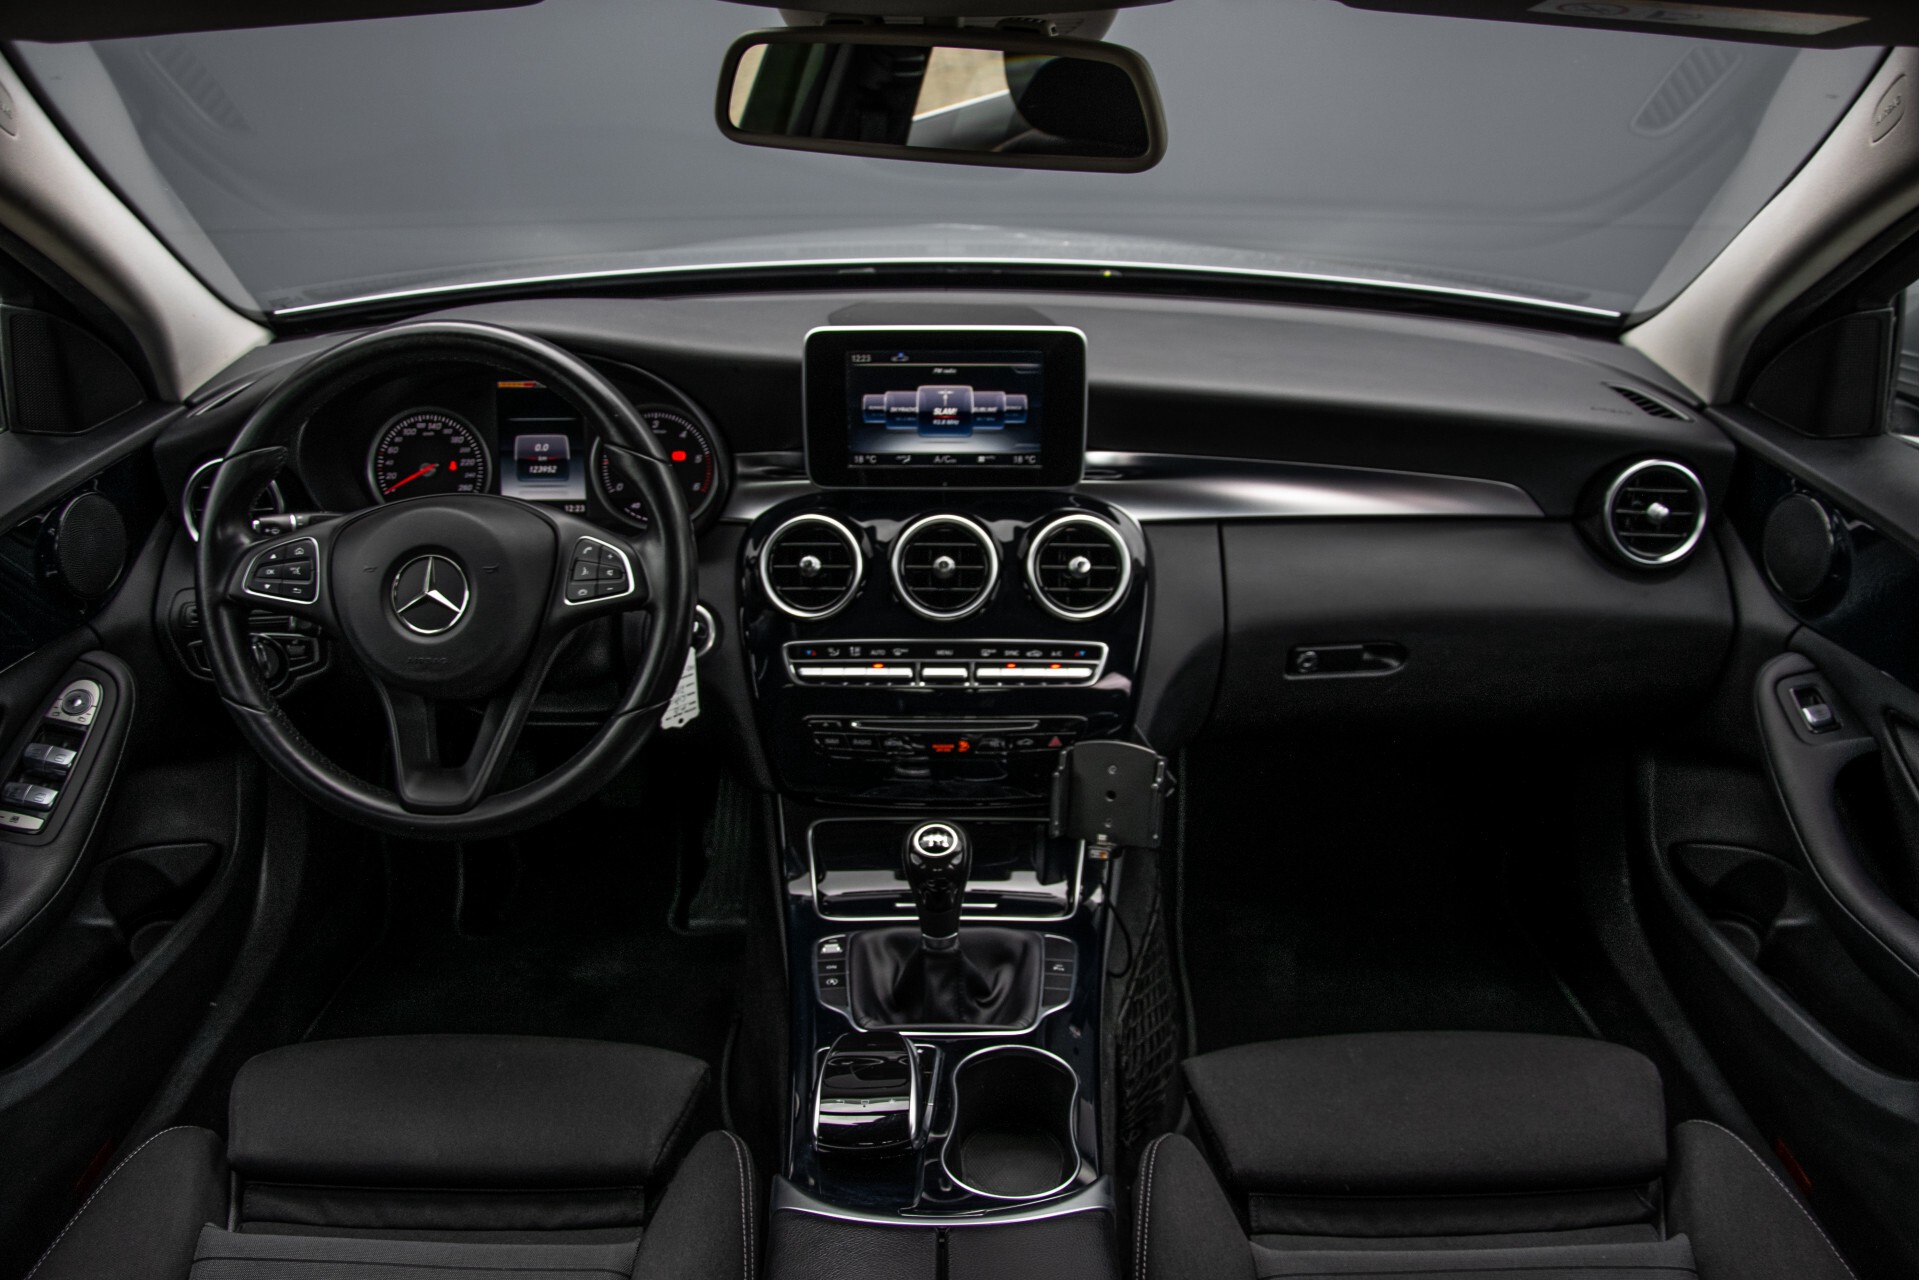 Mercedes-Benz C-Klasse 180 Bluetec Lease Edition Intelligent Light System/Cruise Control/Navi Foto 7